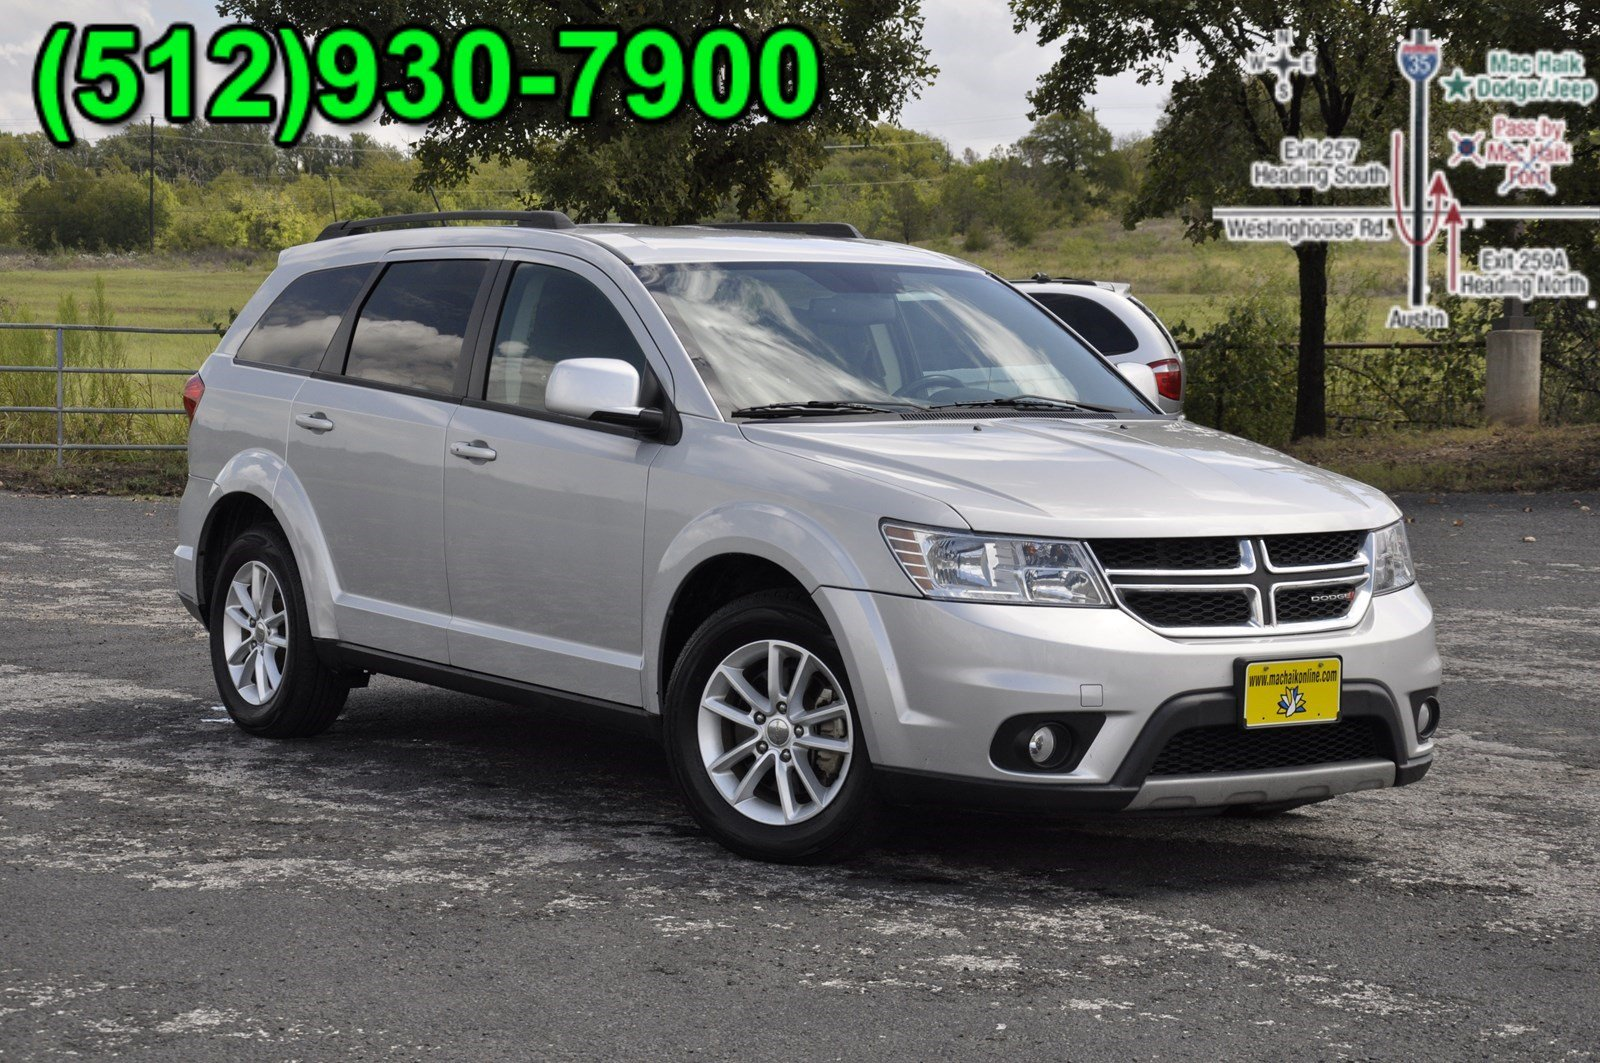 2013 Dodge Journey Sxt Station Wagon For Sale In Austin Tx 201437a